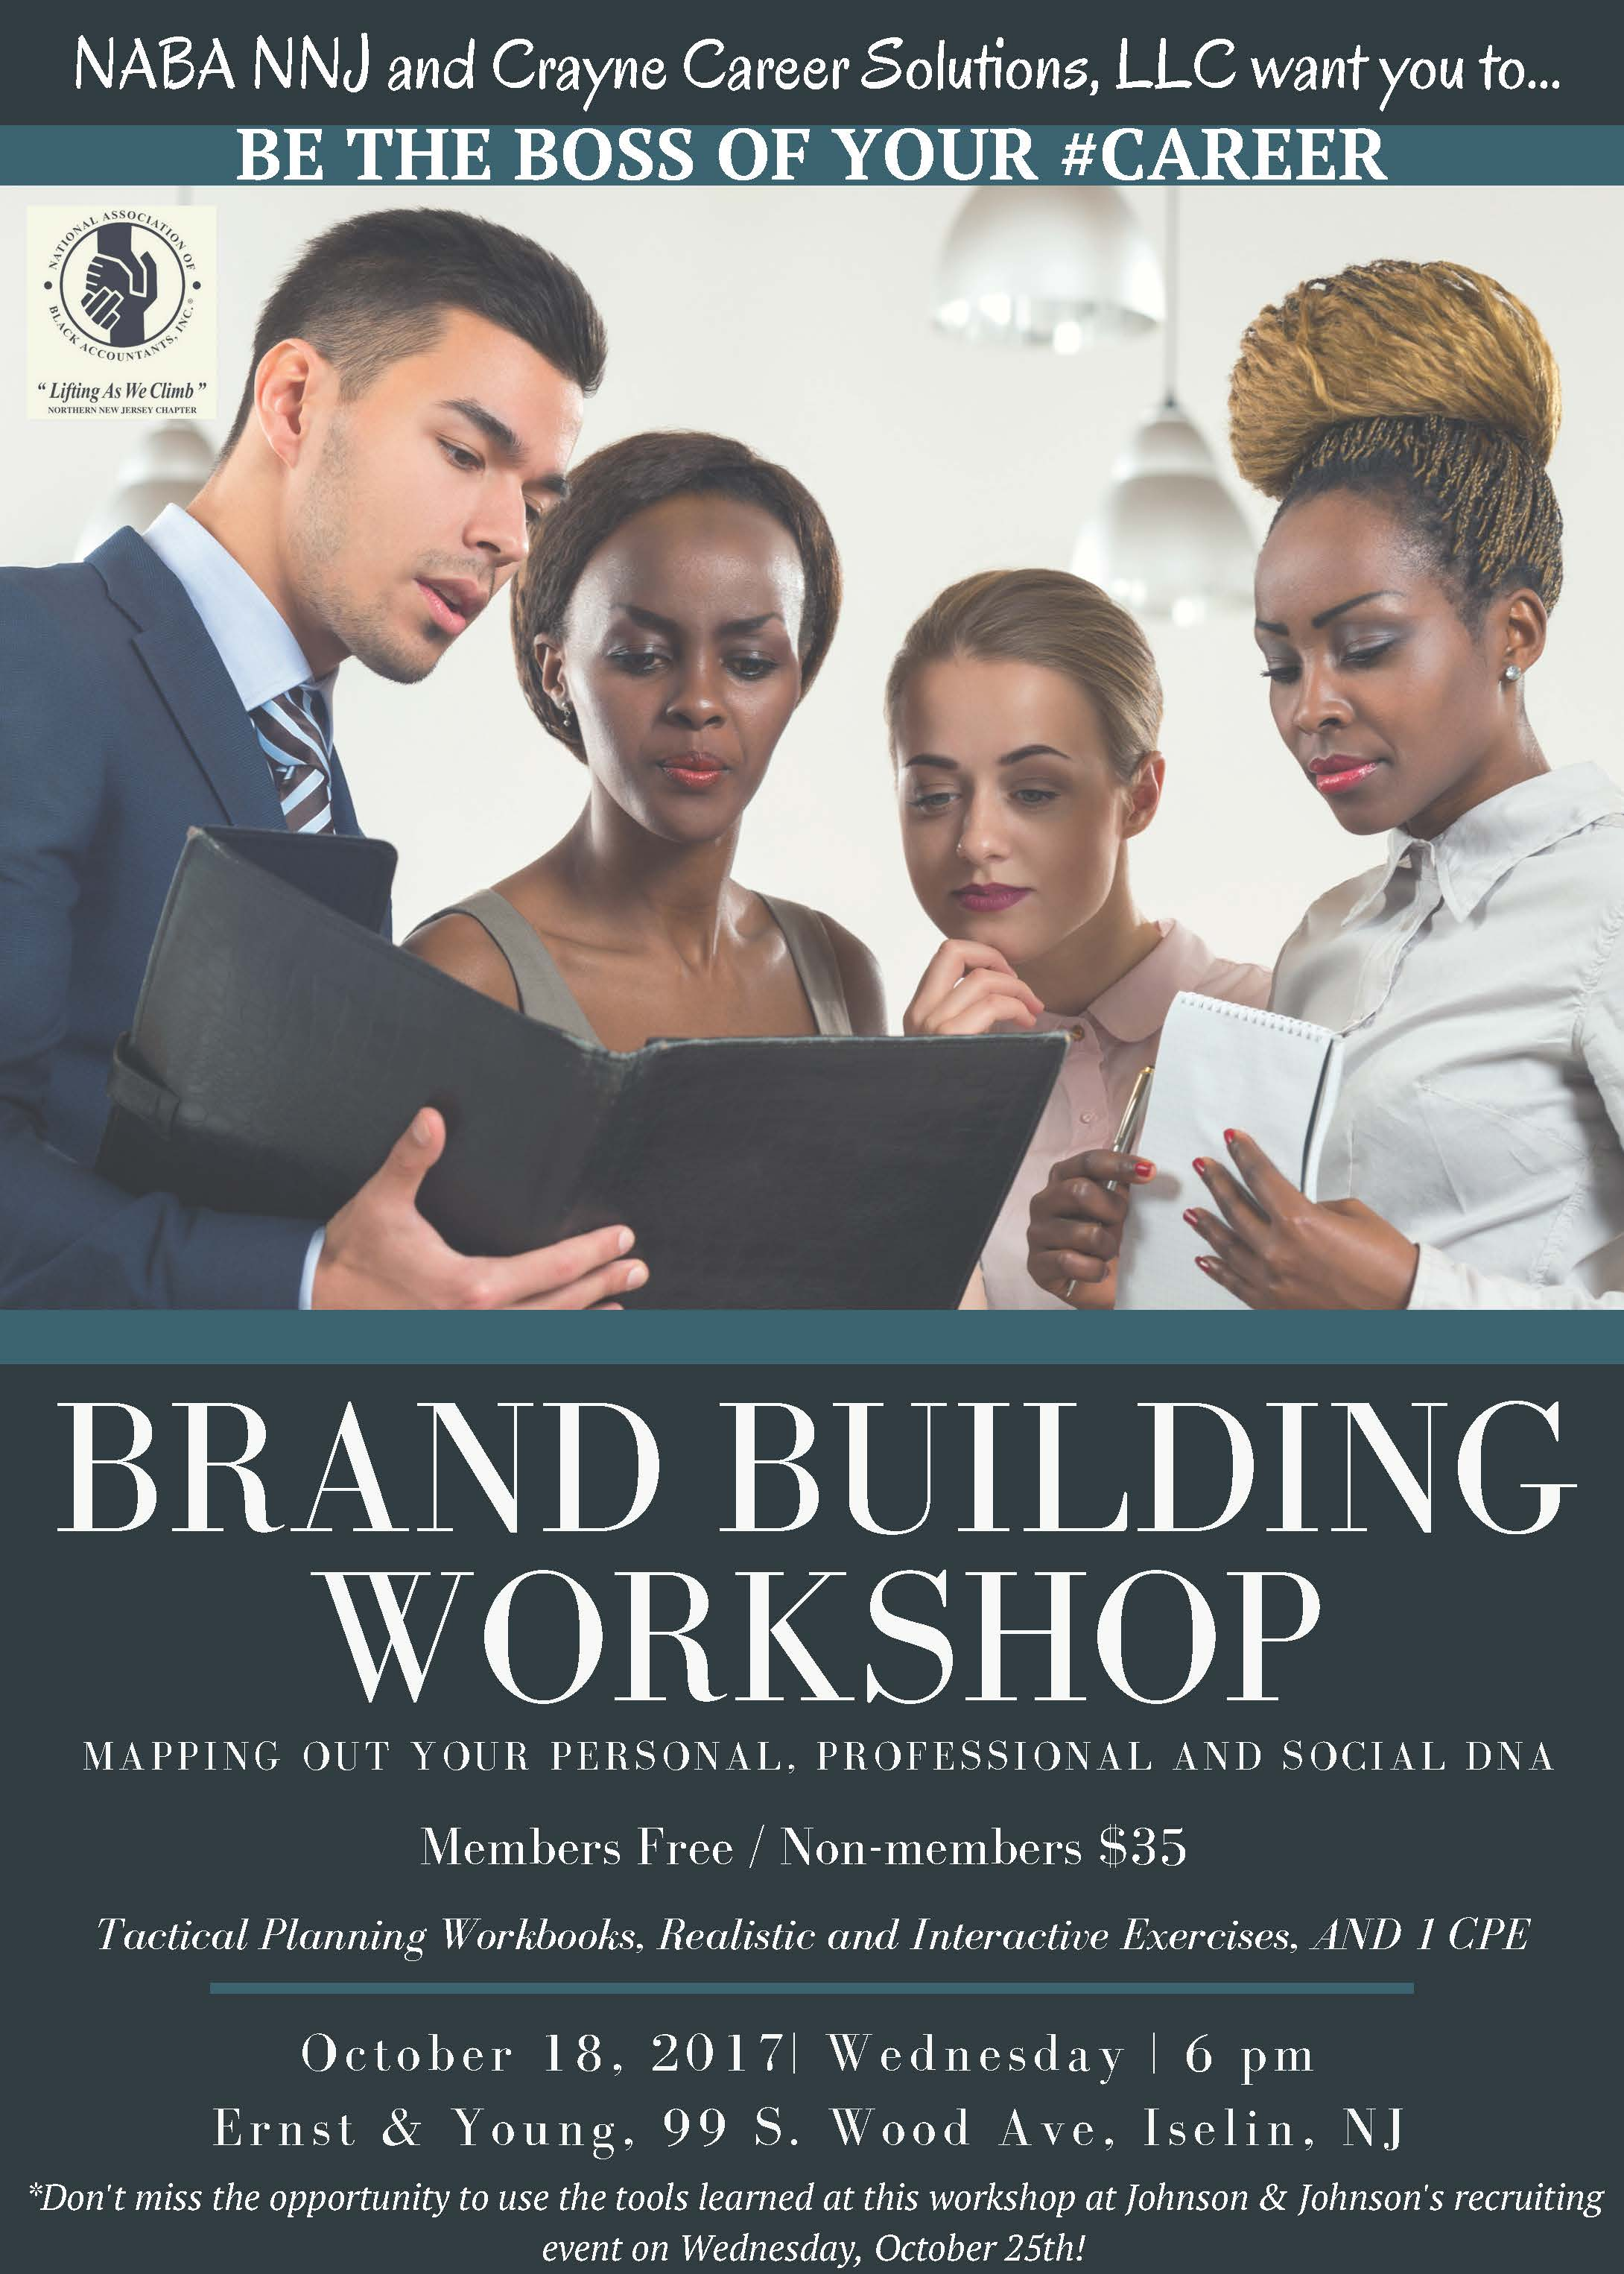 NABA NNJ Brand Building Workshop Flyer